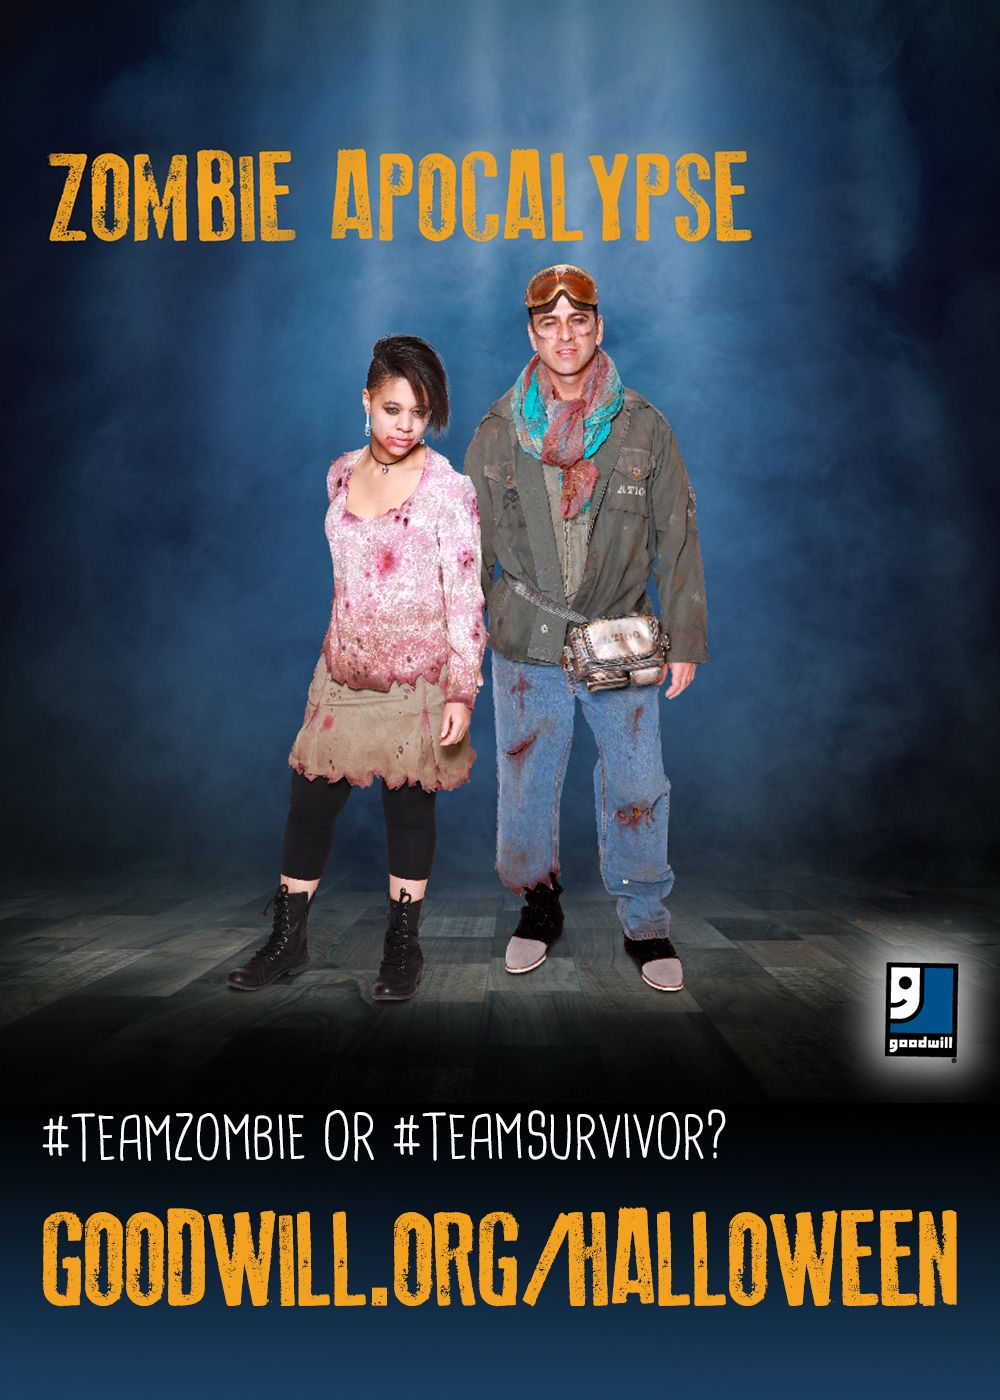 Zombie hoarde shuffling behind you? Don't trip! Just head to